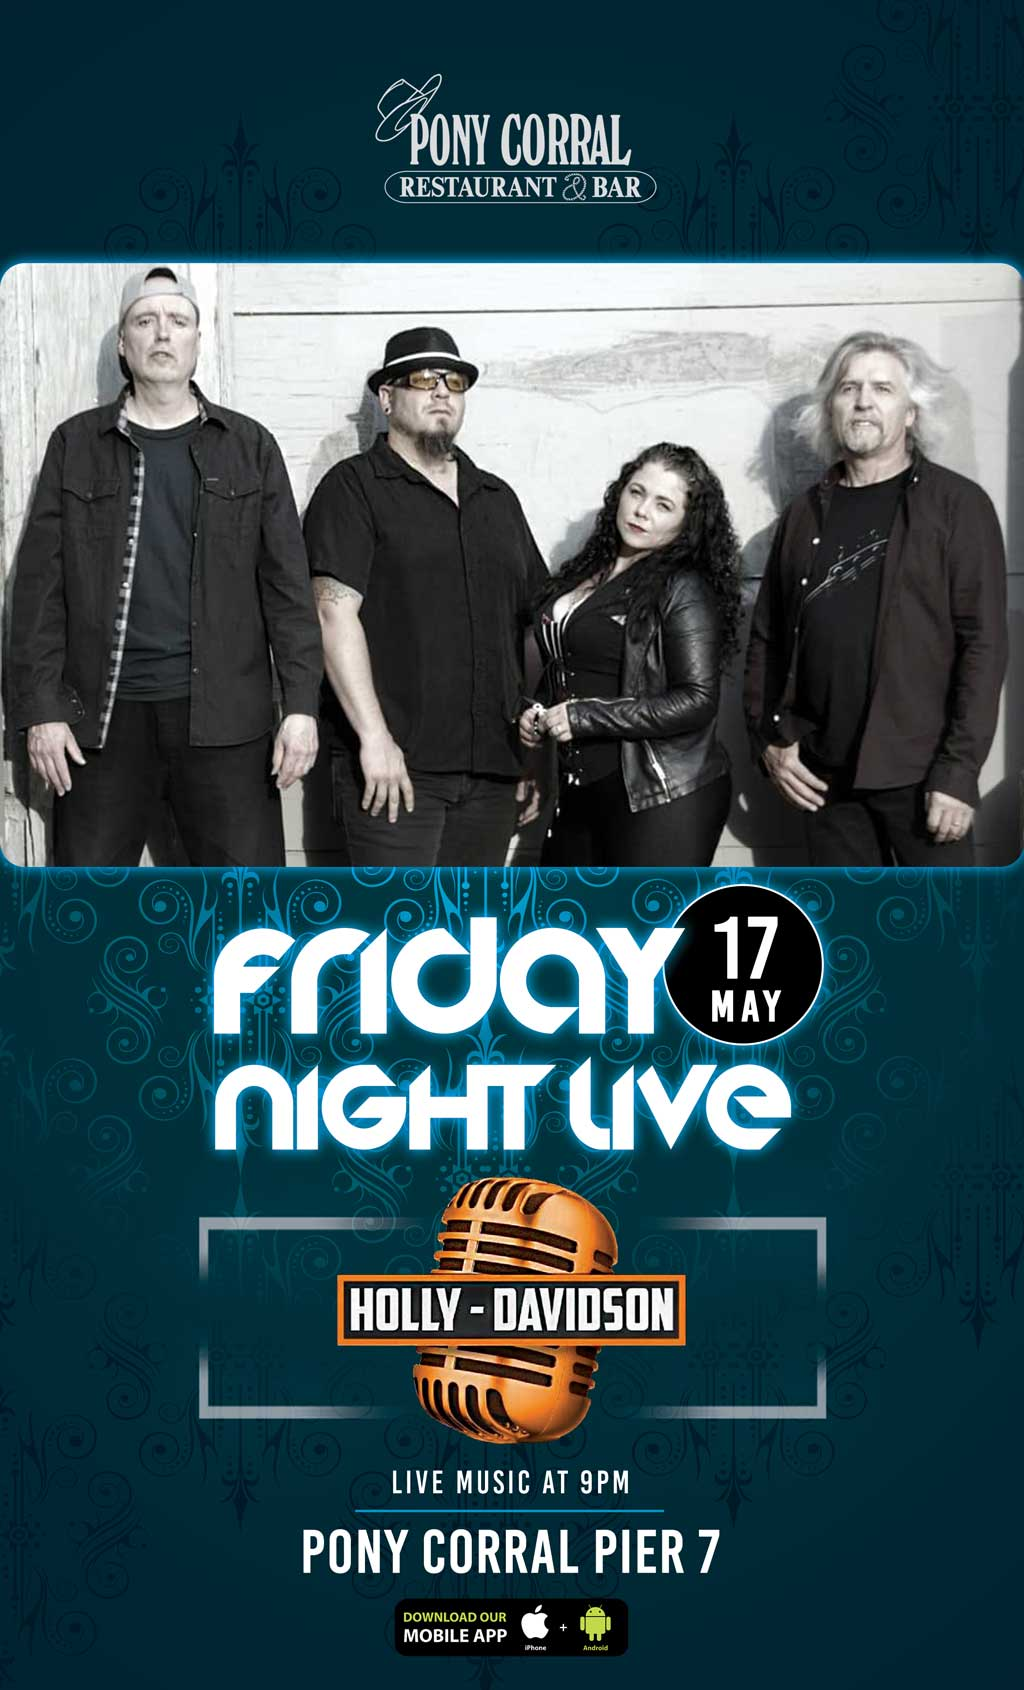 Holly Davidson Band at Pier 7 | Pony Corral Restaurant & Bar | Winnipeg